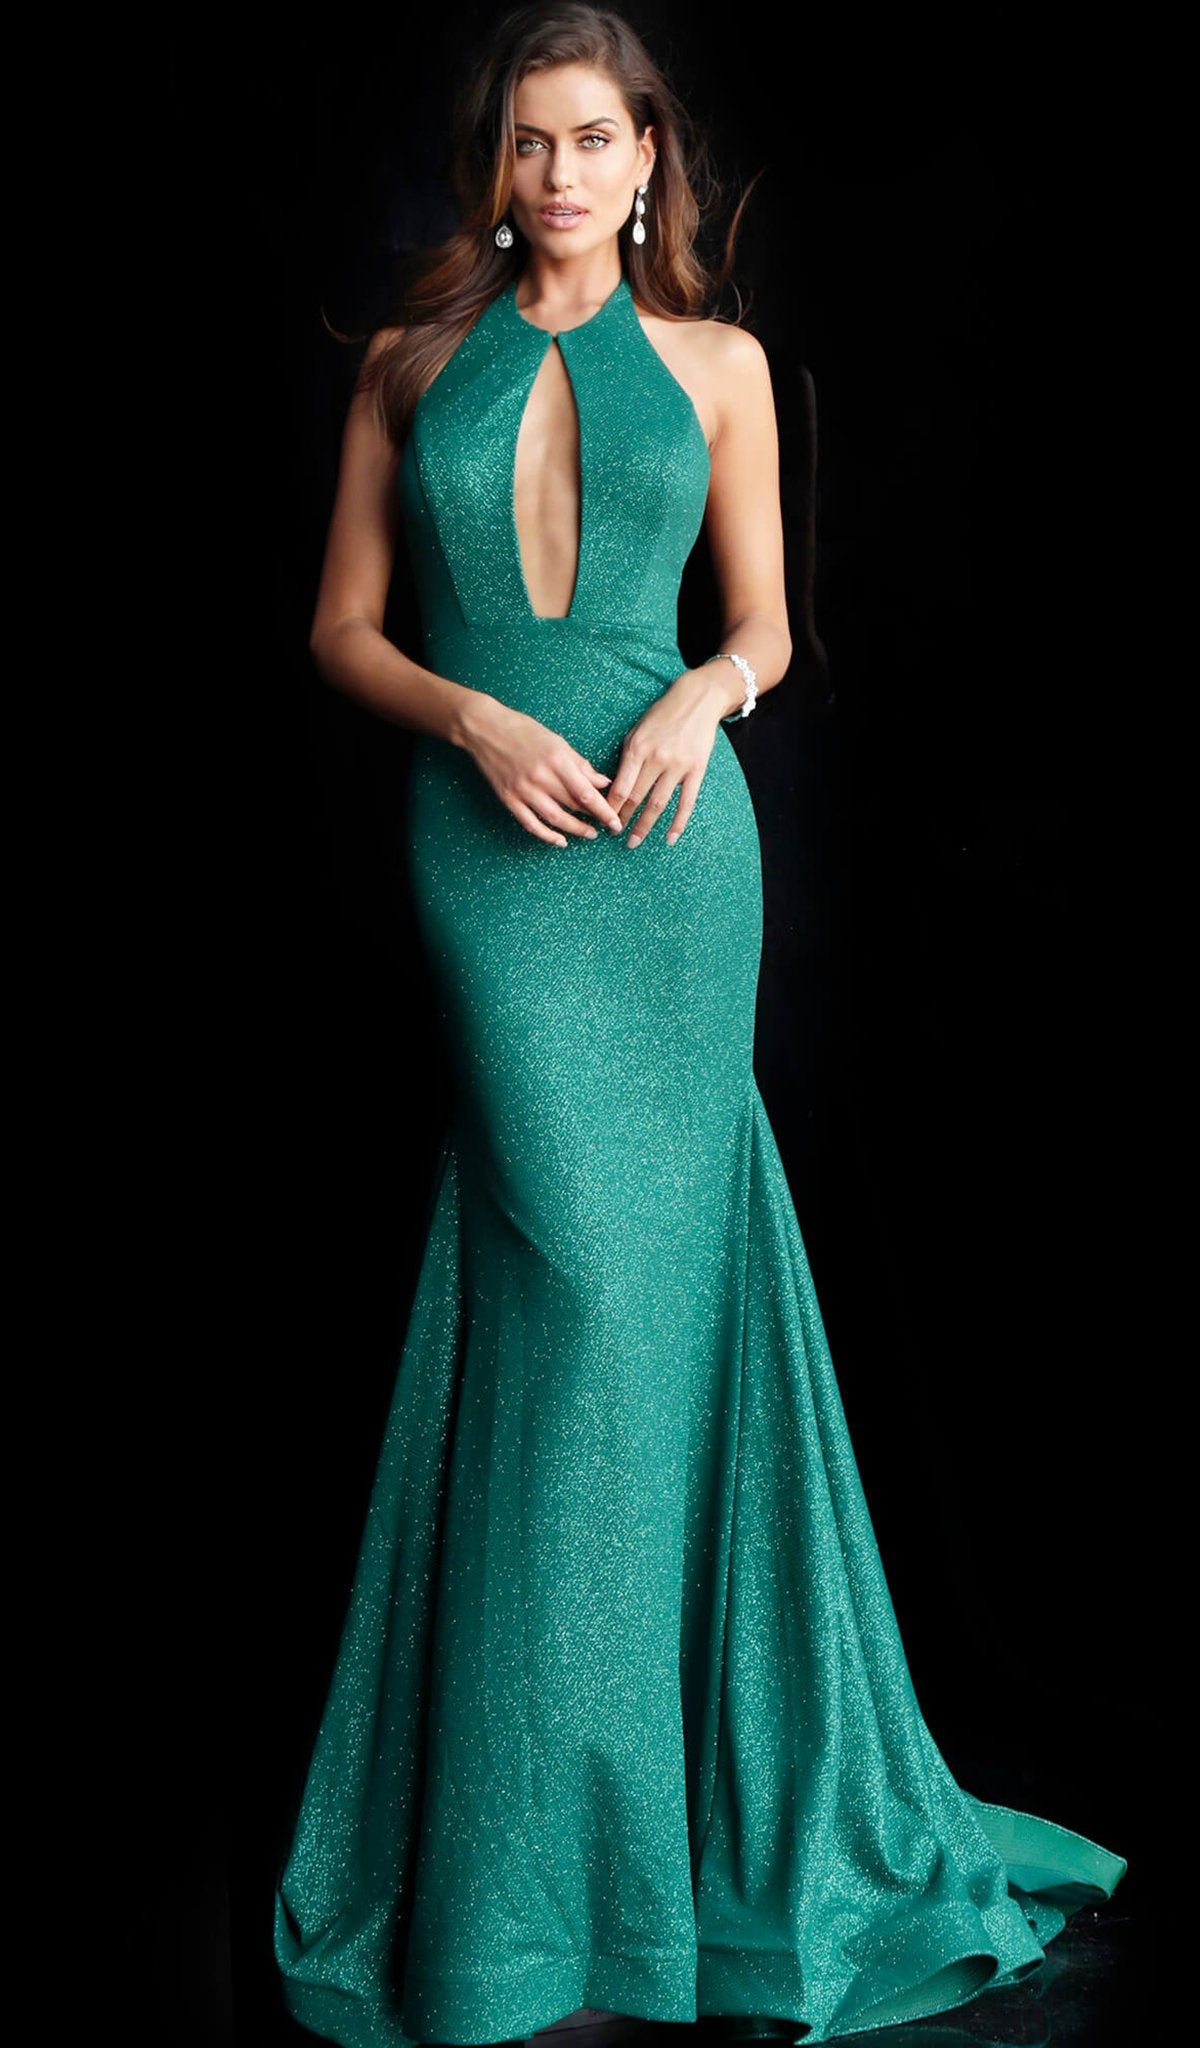 Jovani - 64851 Backless Front Keyhole Stretch Glitter Prom Gown in Green